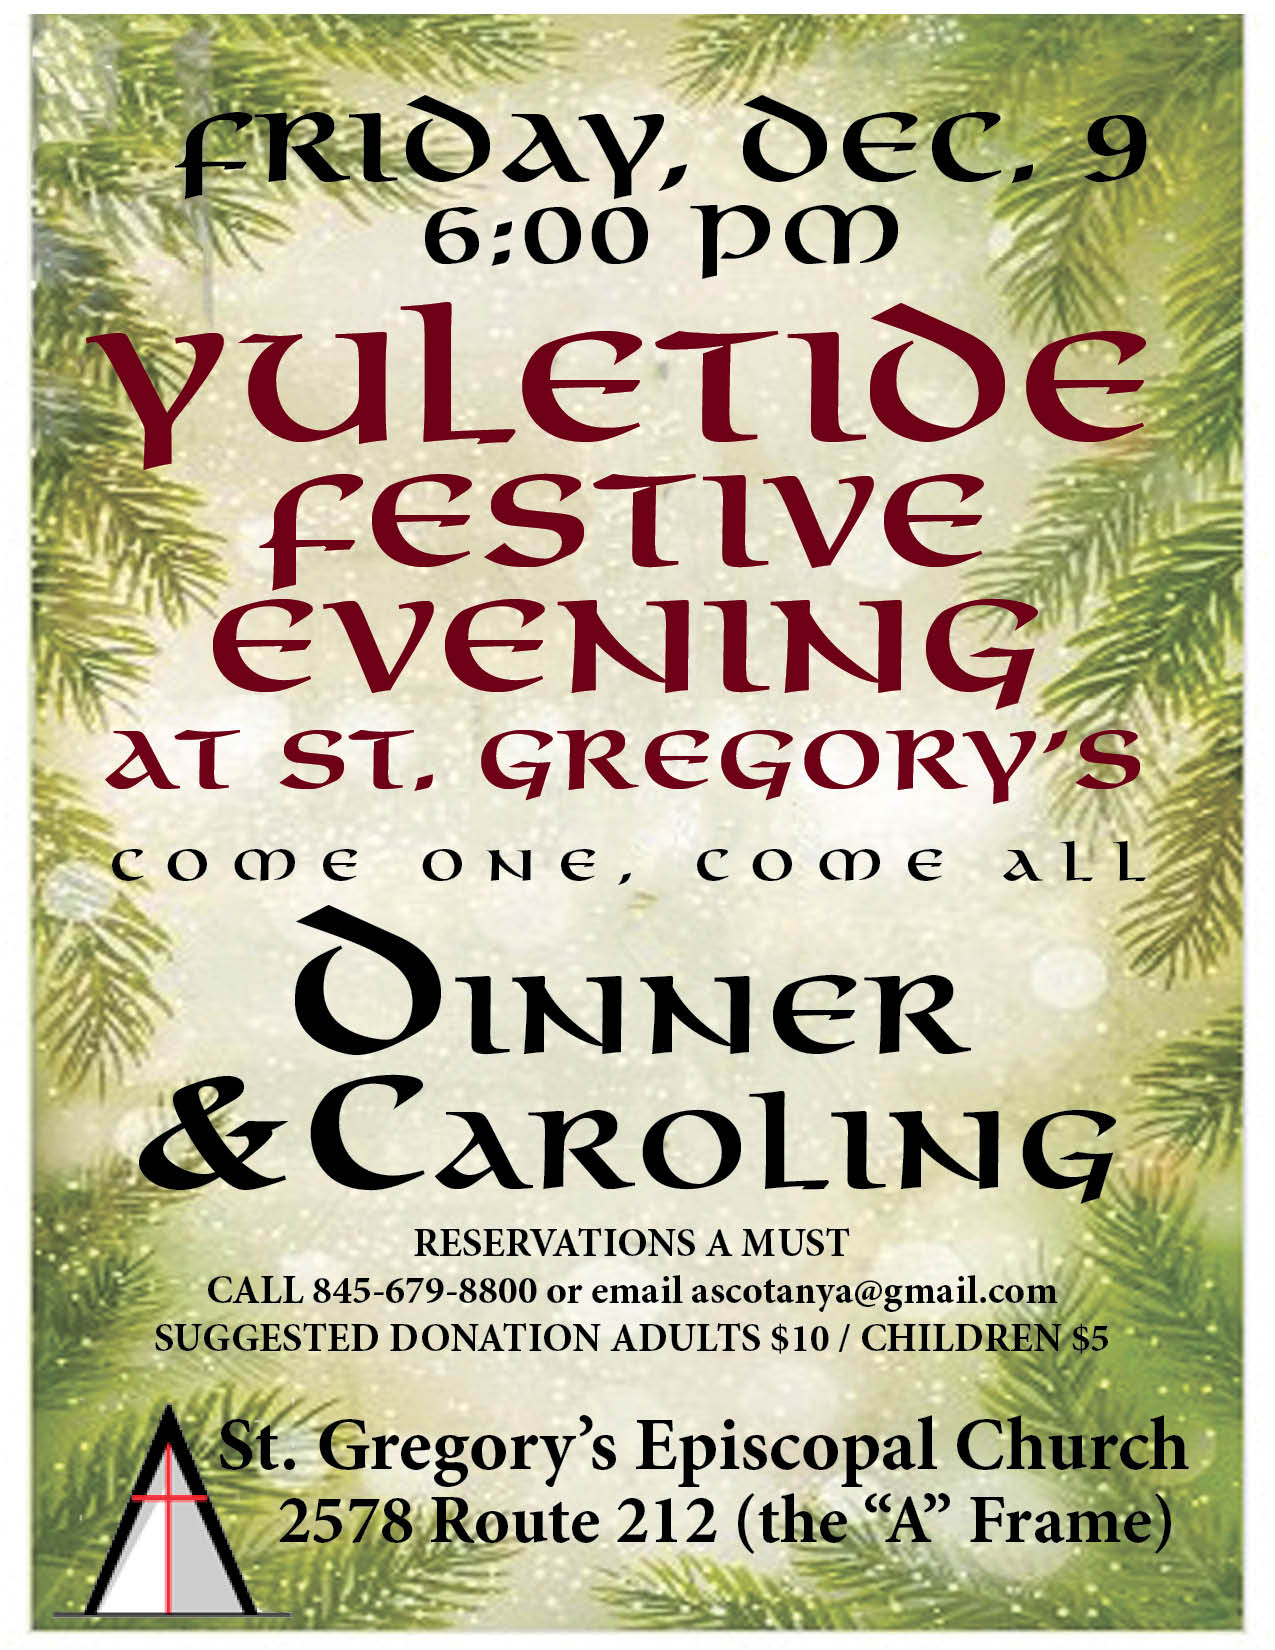 Yuletide festive event in Woodstock December 9